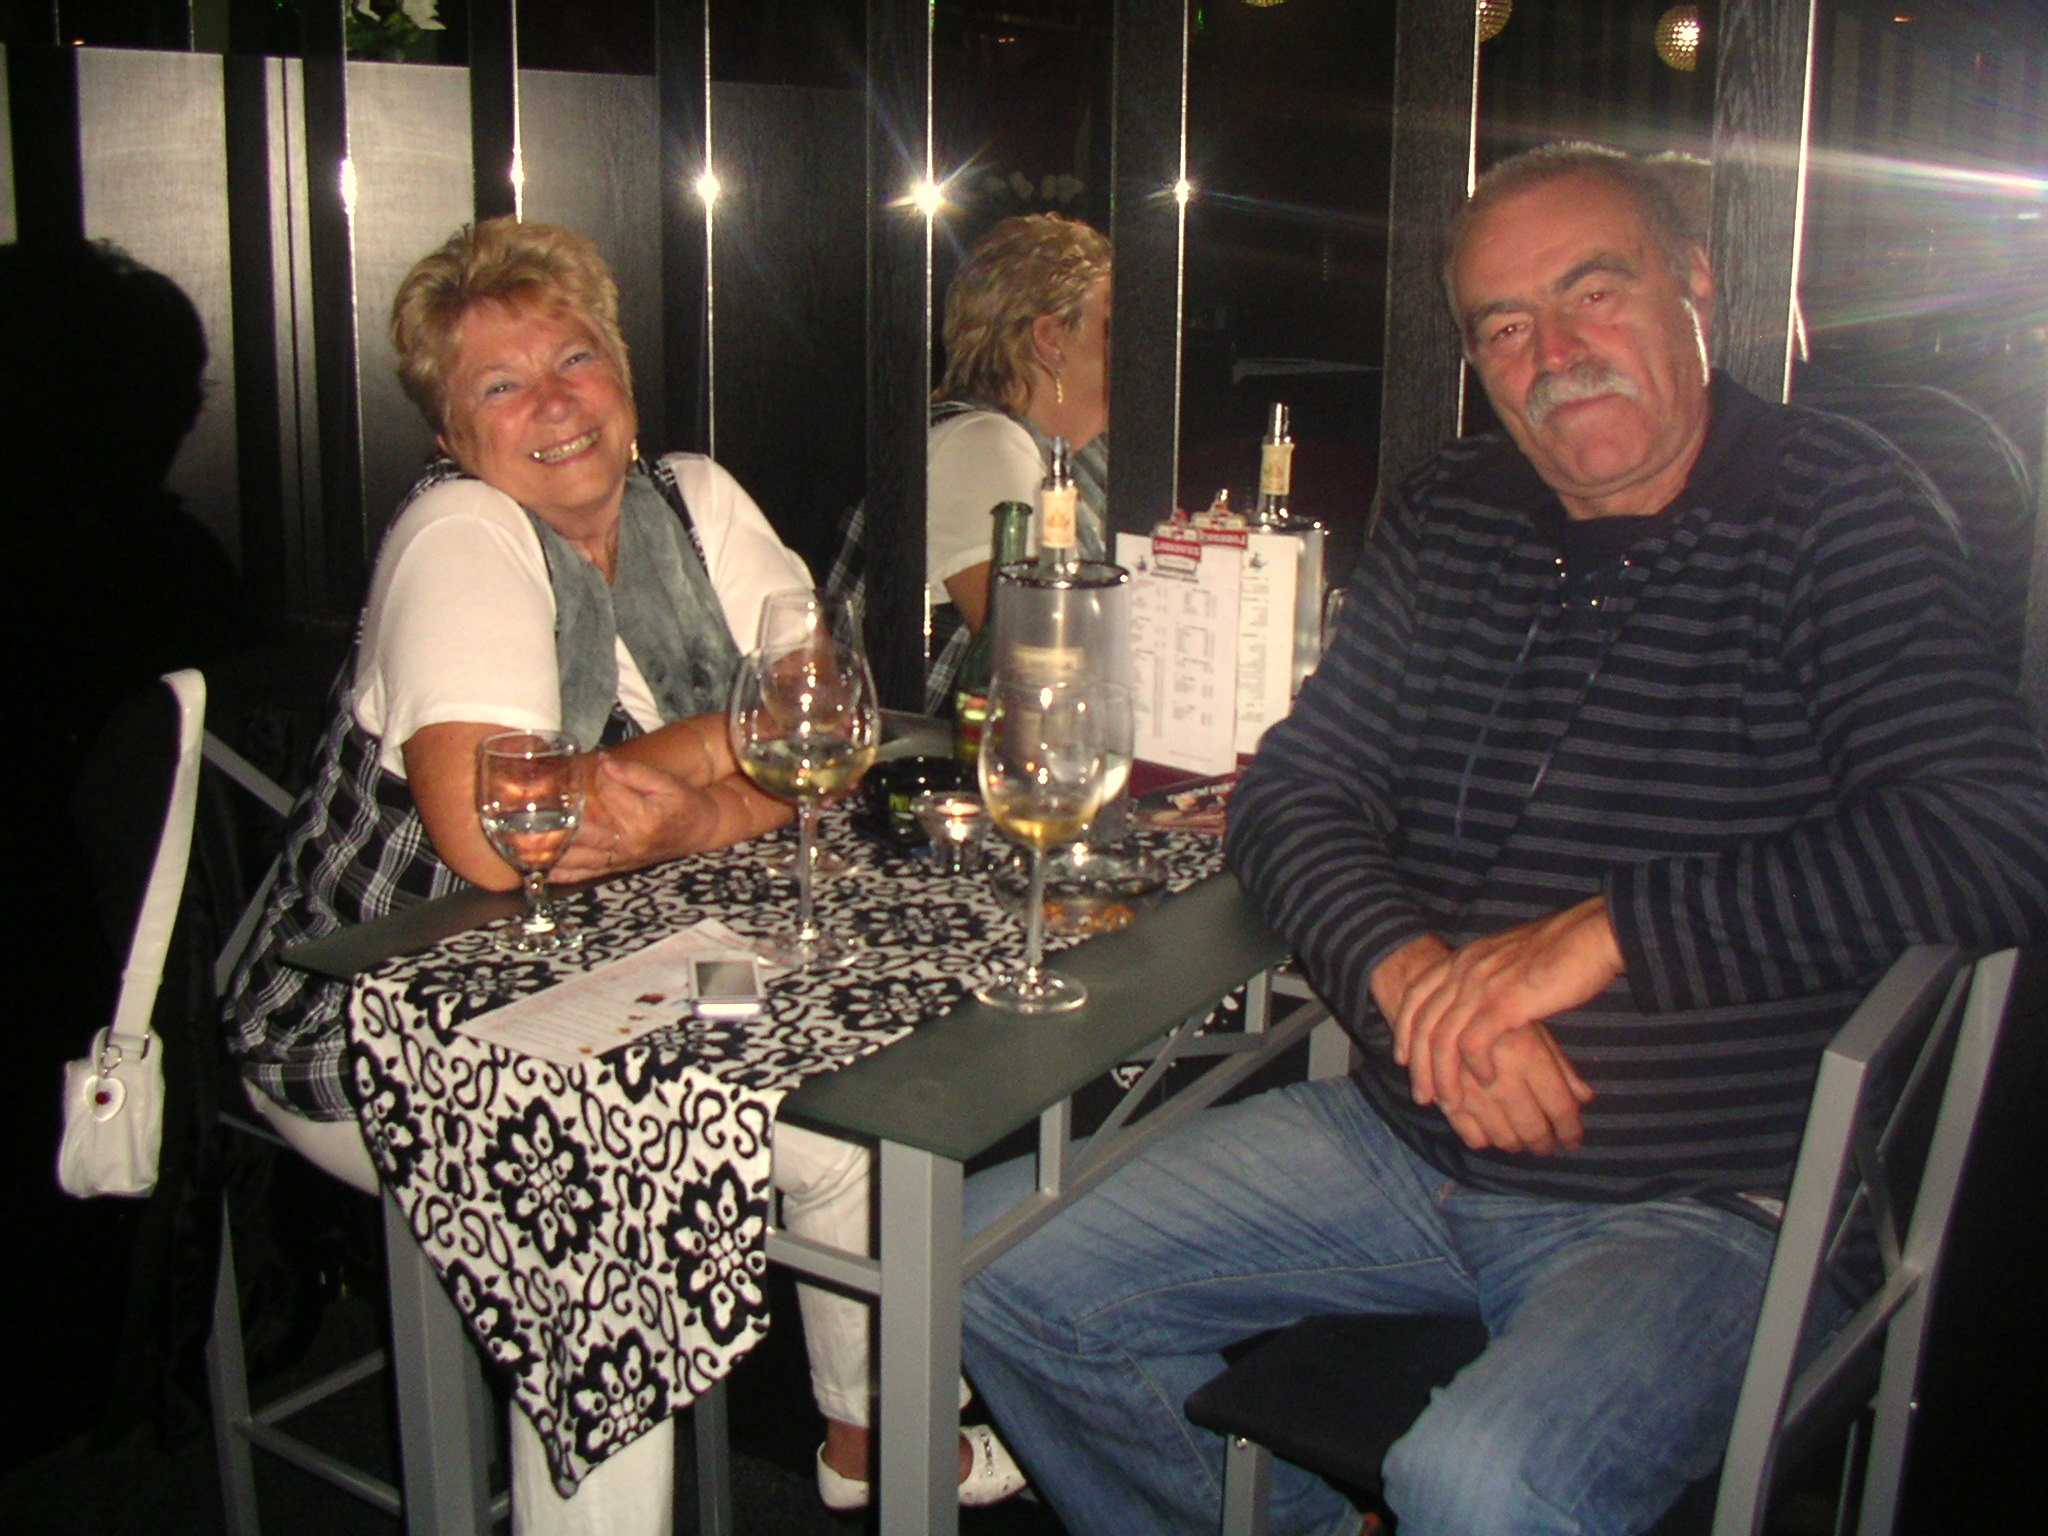 party_v_barvach_20_20111111_1258926129